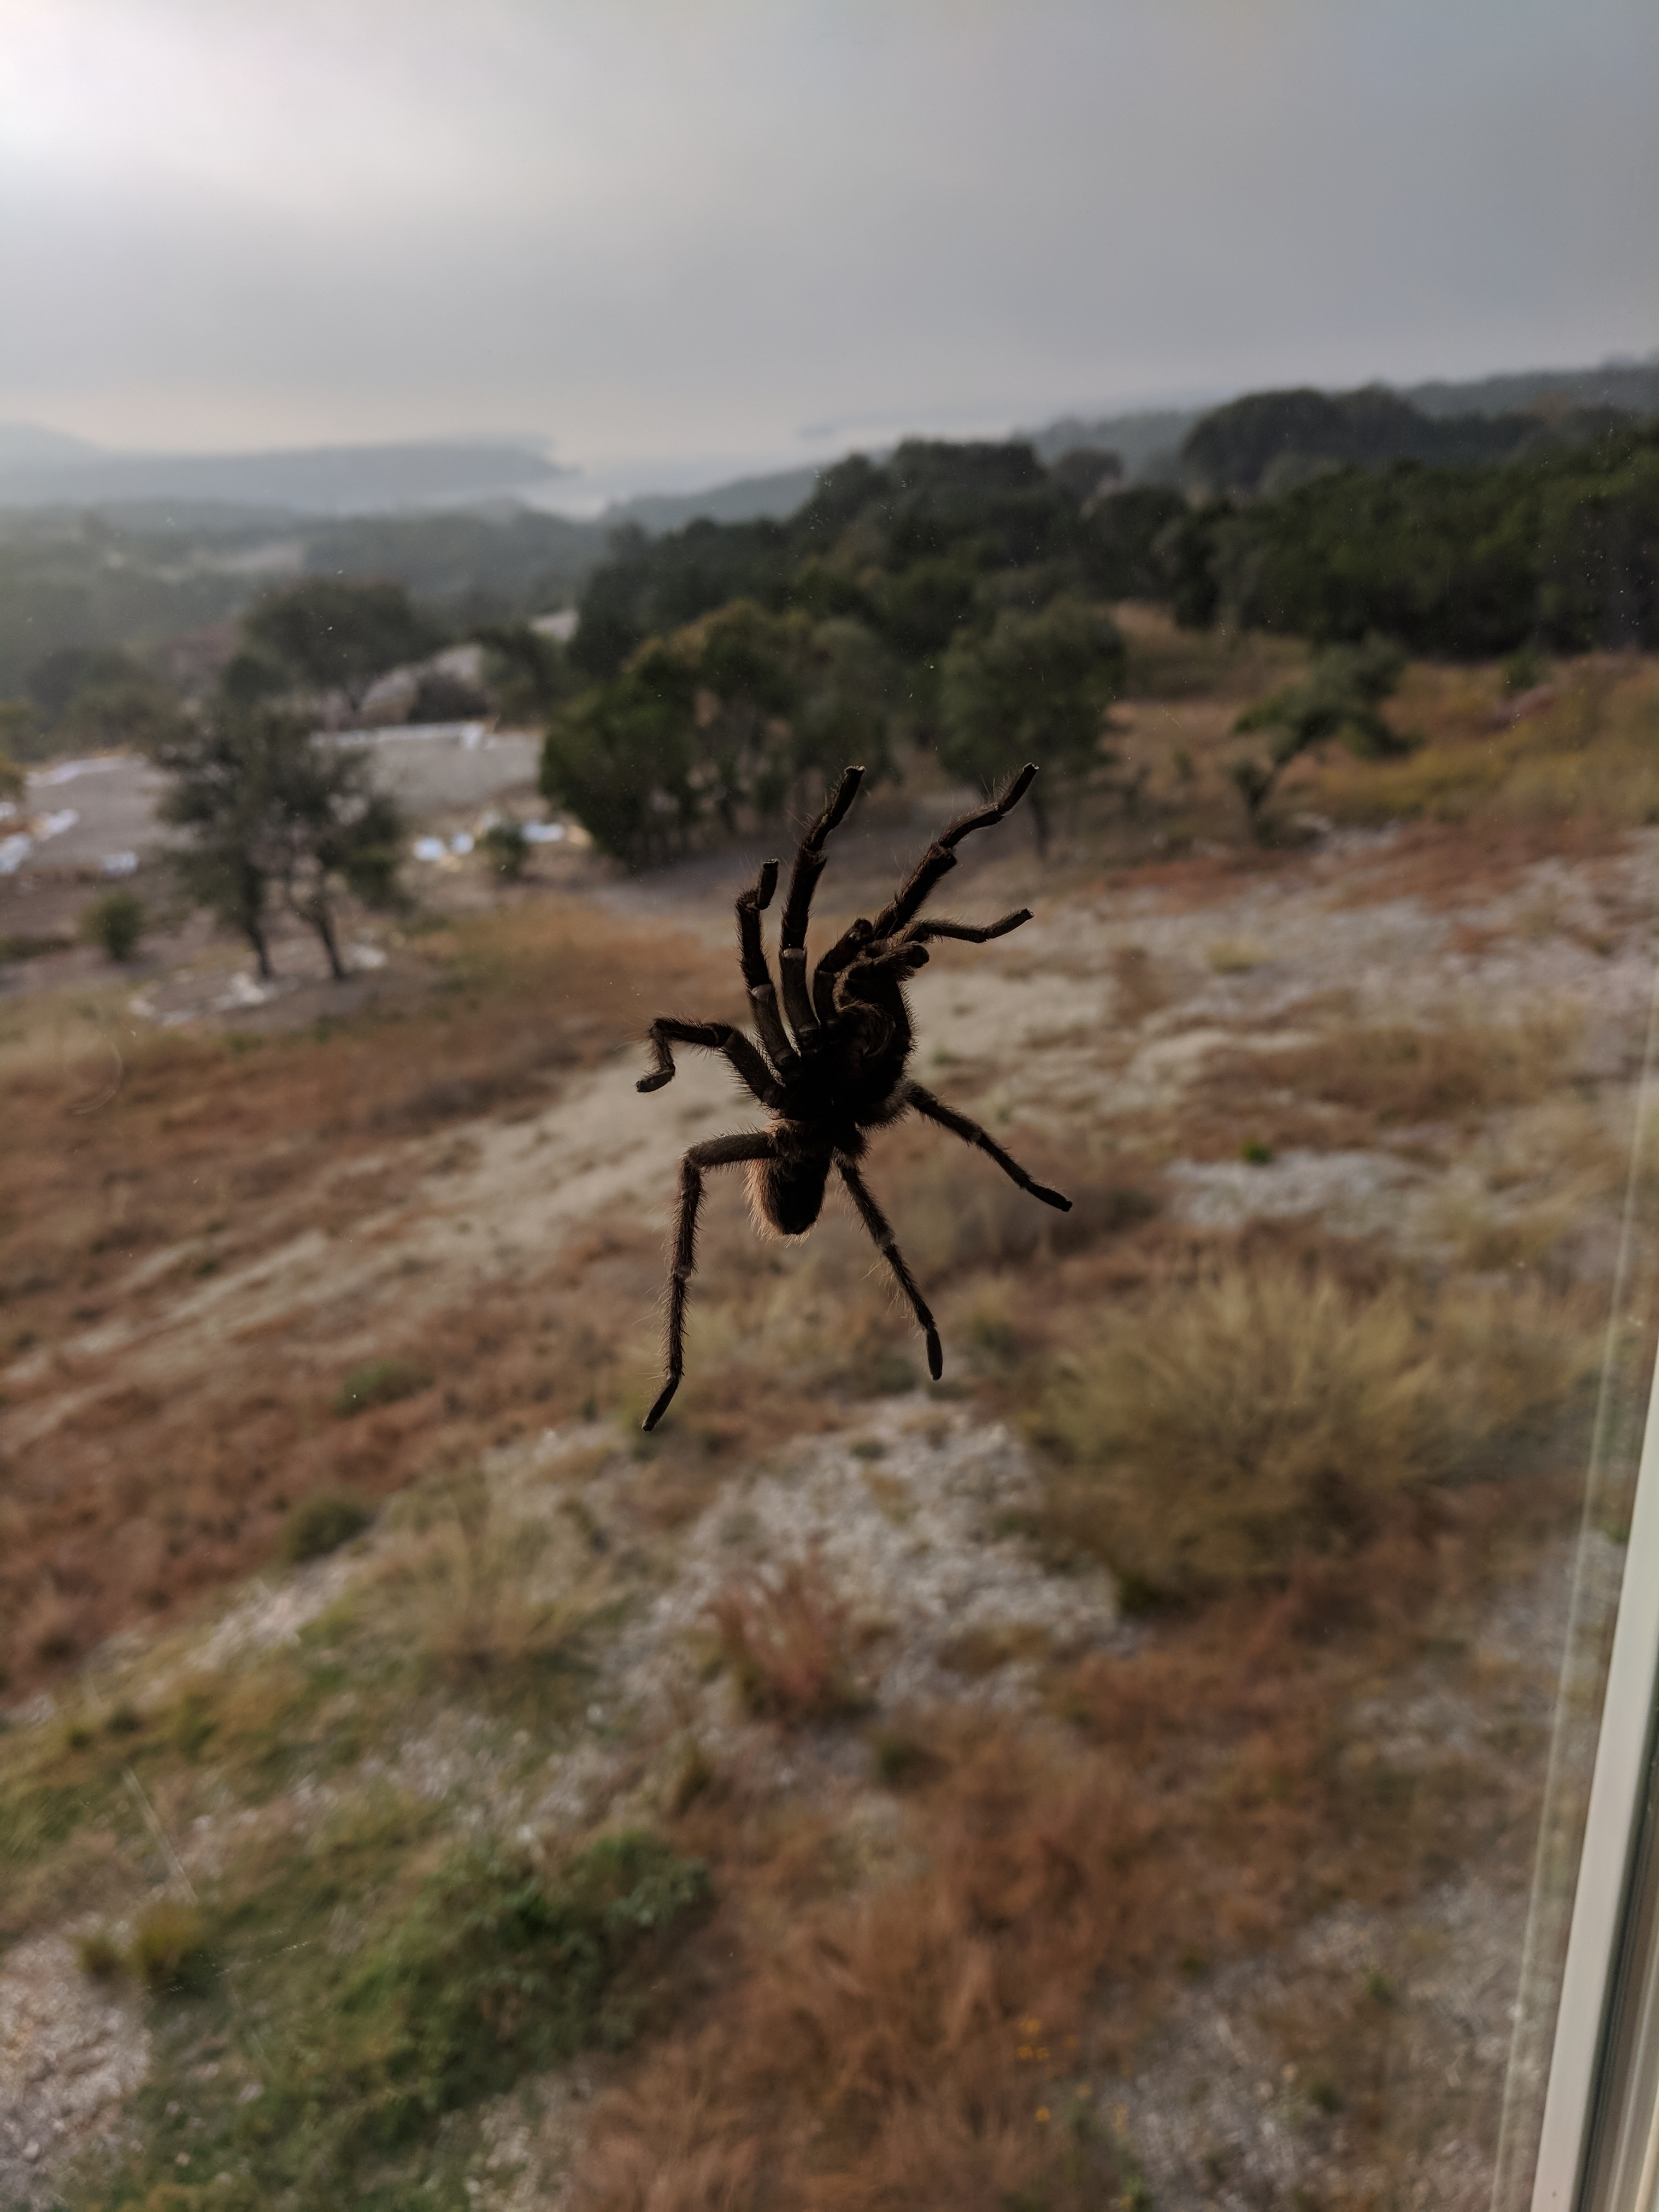 Image titlehttps://www.thespruce.com/the-tarantula-is-not-deadly-spider-2656757